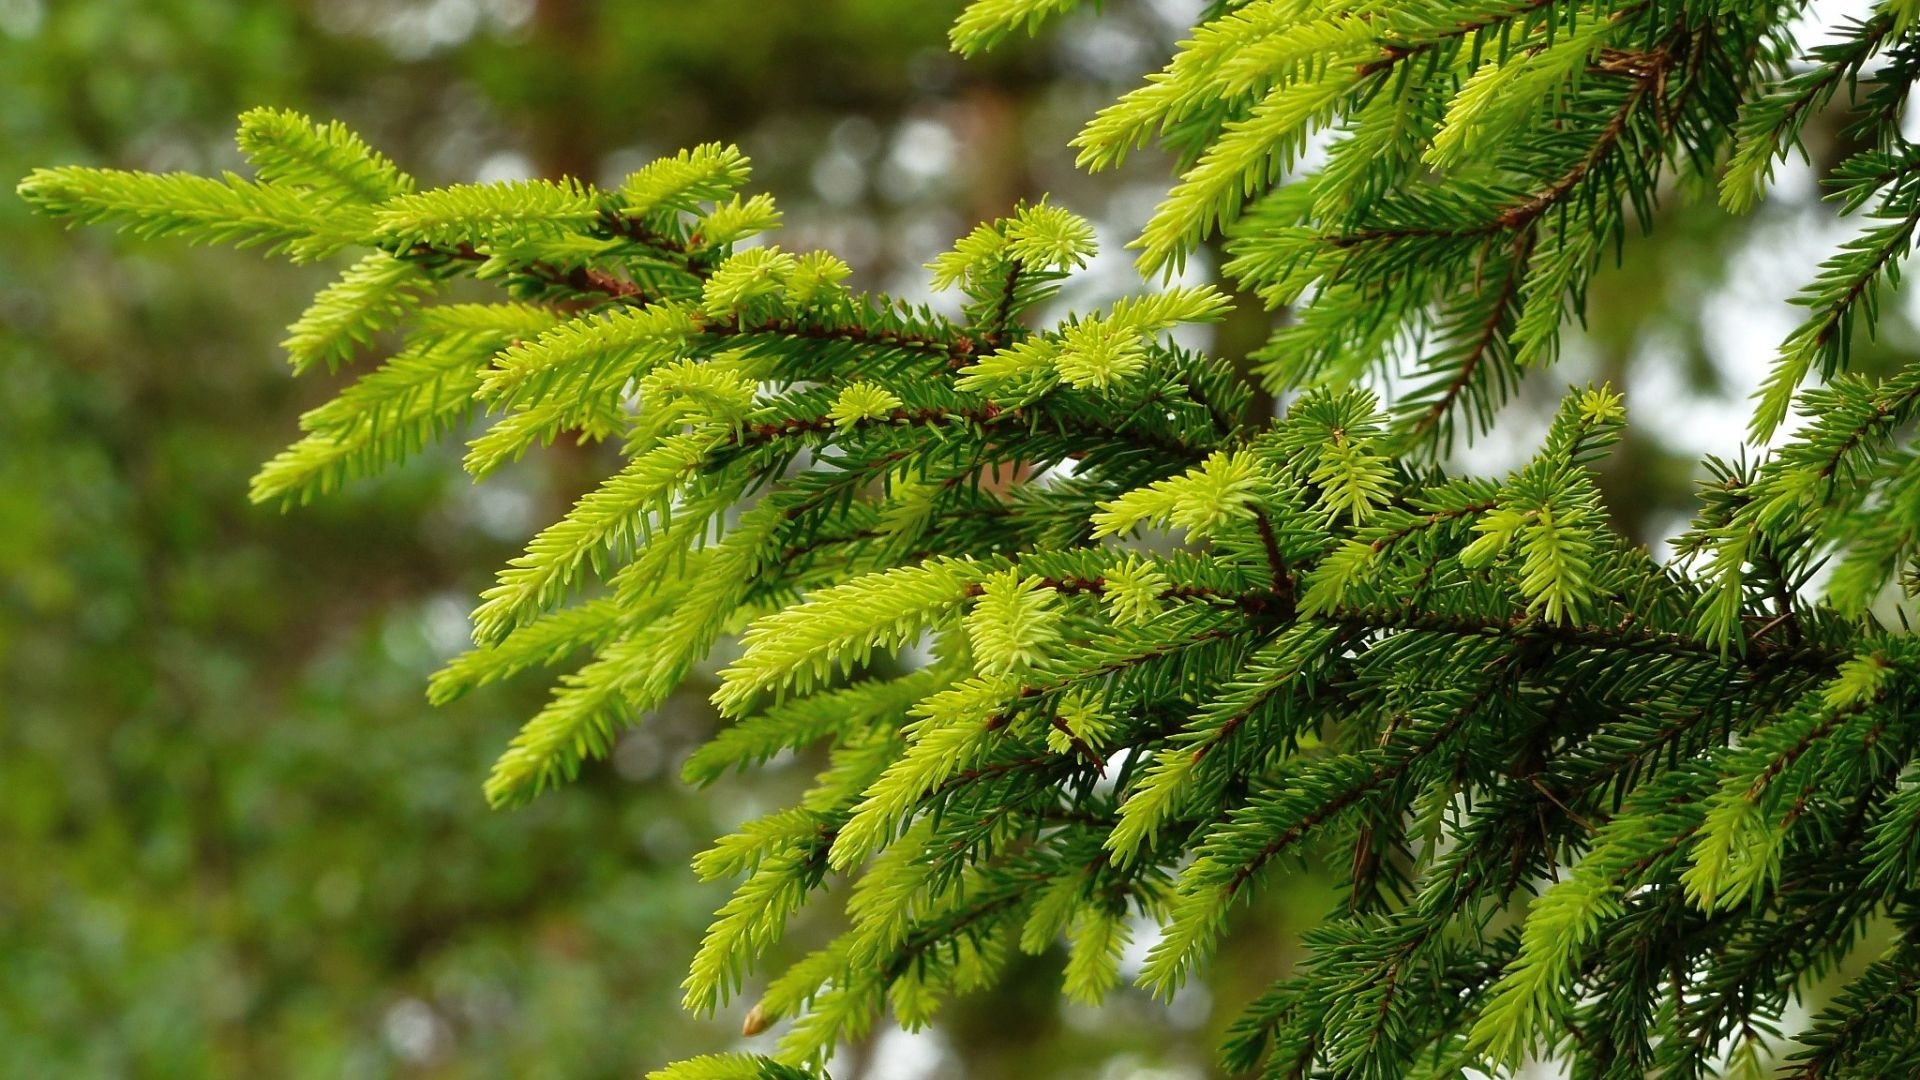 Spruce Branches Wallpaper